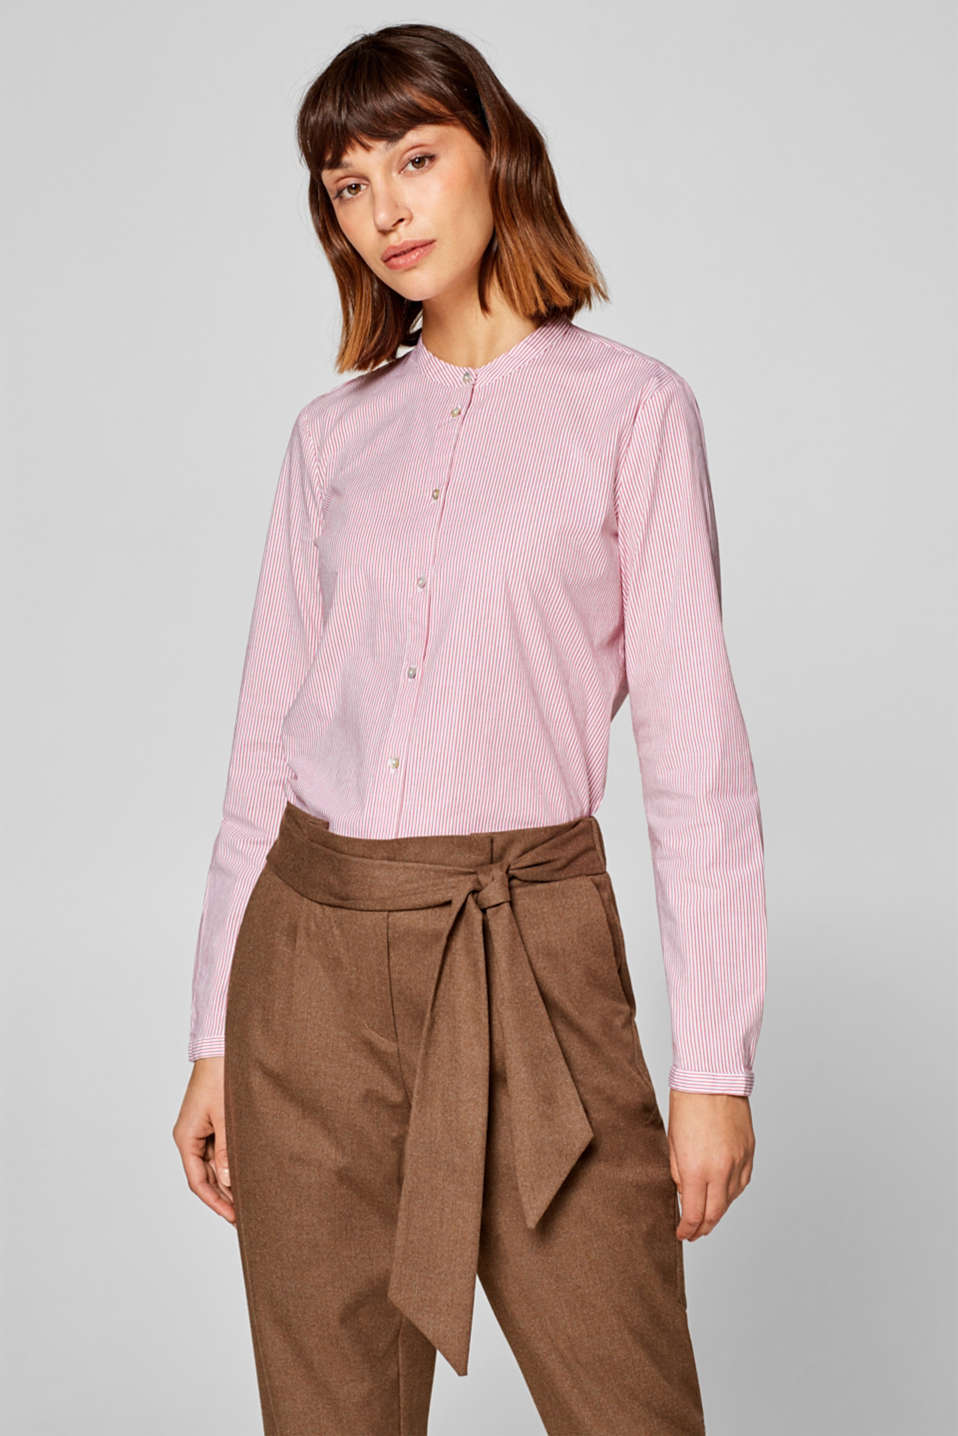 Esprit - Shirt blouse with a subtle stand-up collar, made from stretch cotton